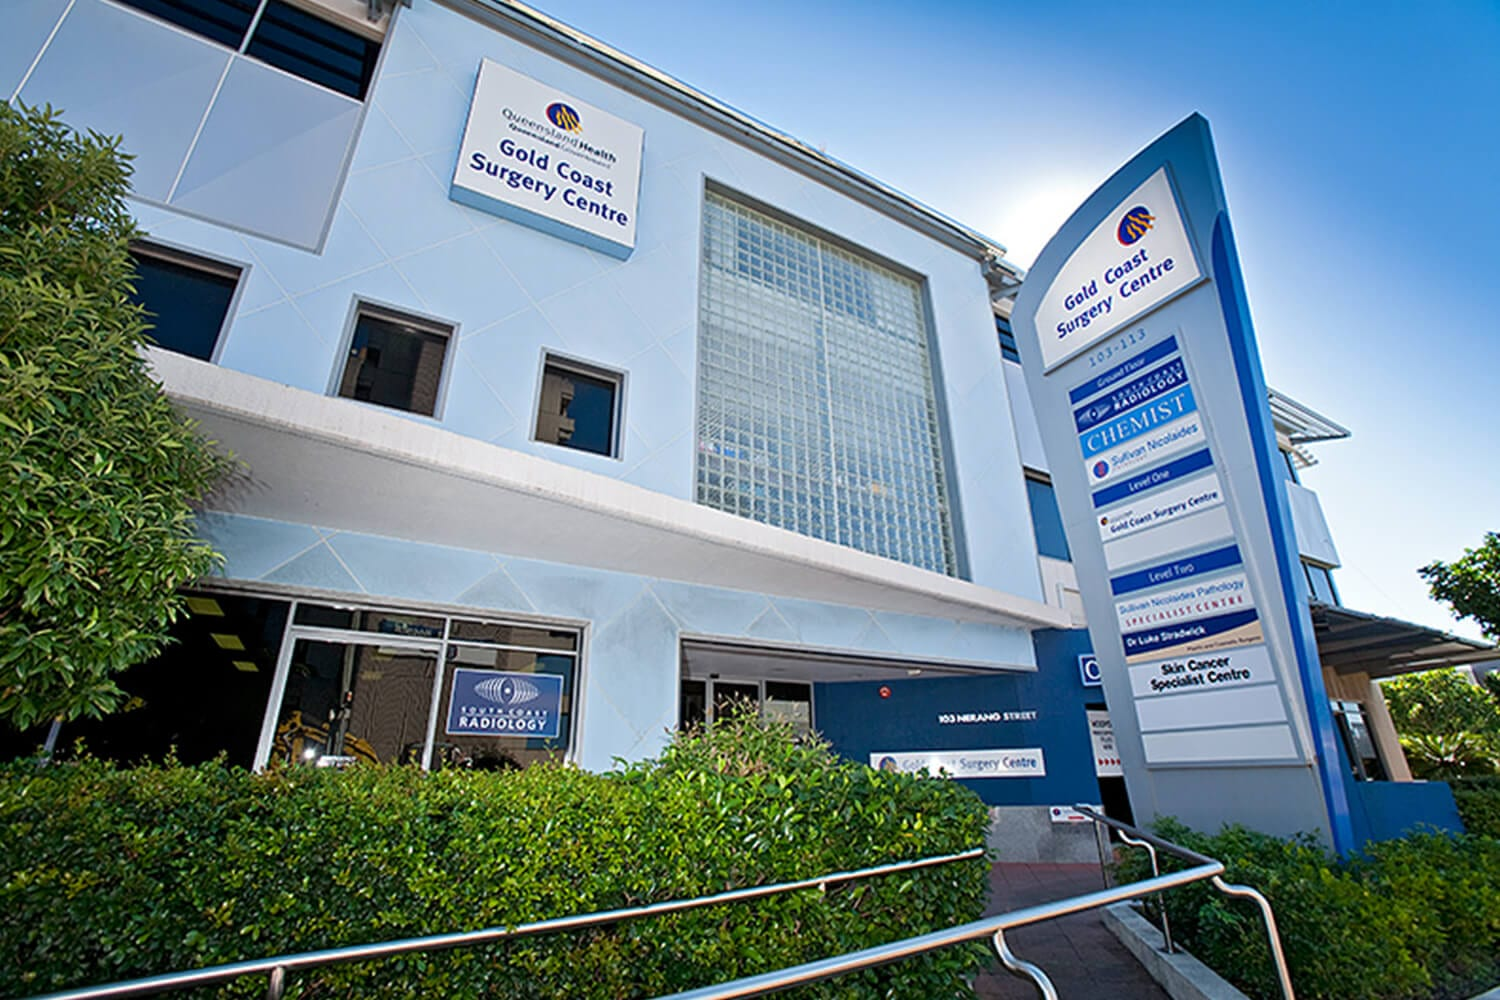 South Coast Radiology | Leading Imaging Provider in